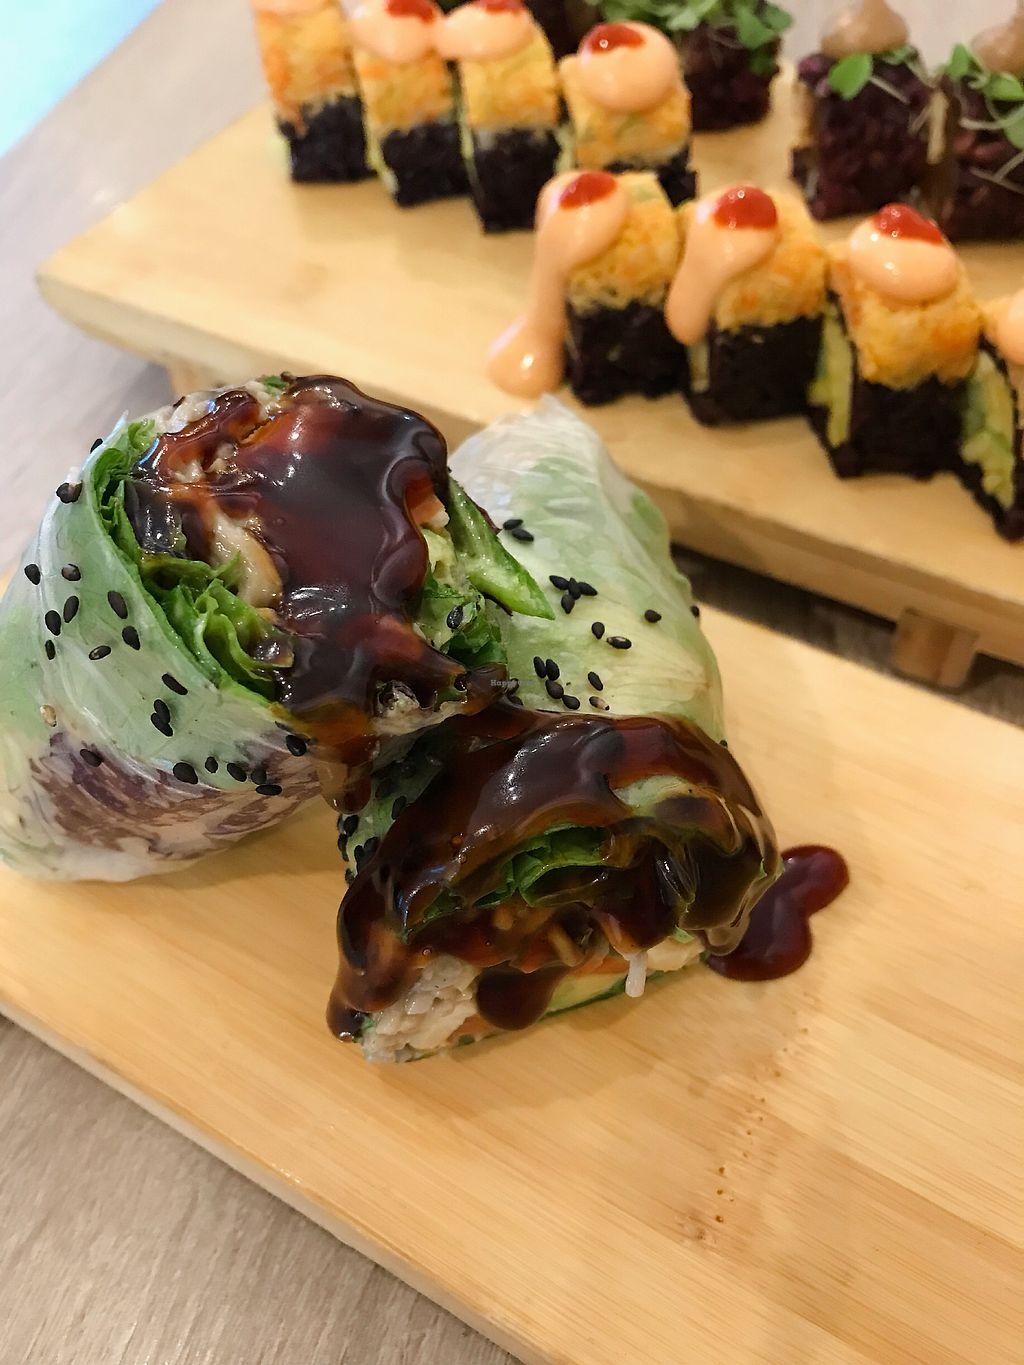 """Photo of Beyond Sushi - Midtown West  by <a href=""""/members/profile/Dimanta"""">Dimanta</a> <br/>Nutty Buddy was so good! <br/> March 16, 2018  - <a href='/contact/abuse/image/54327/371414'>Report</a>"""